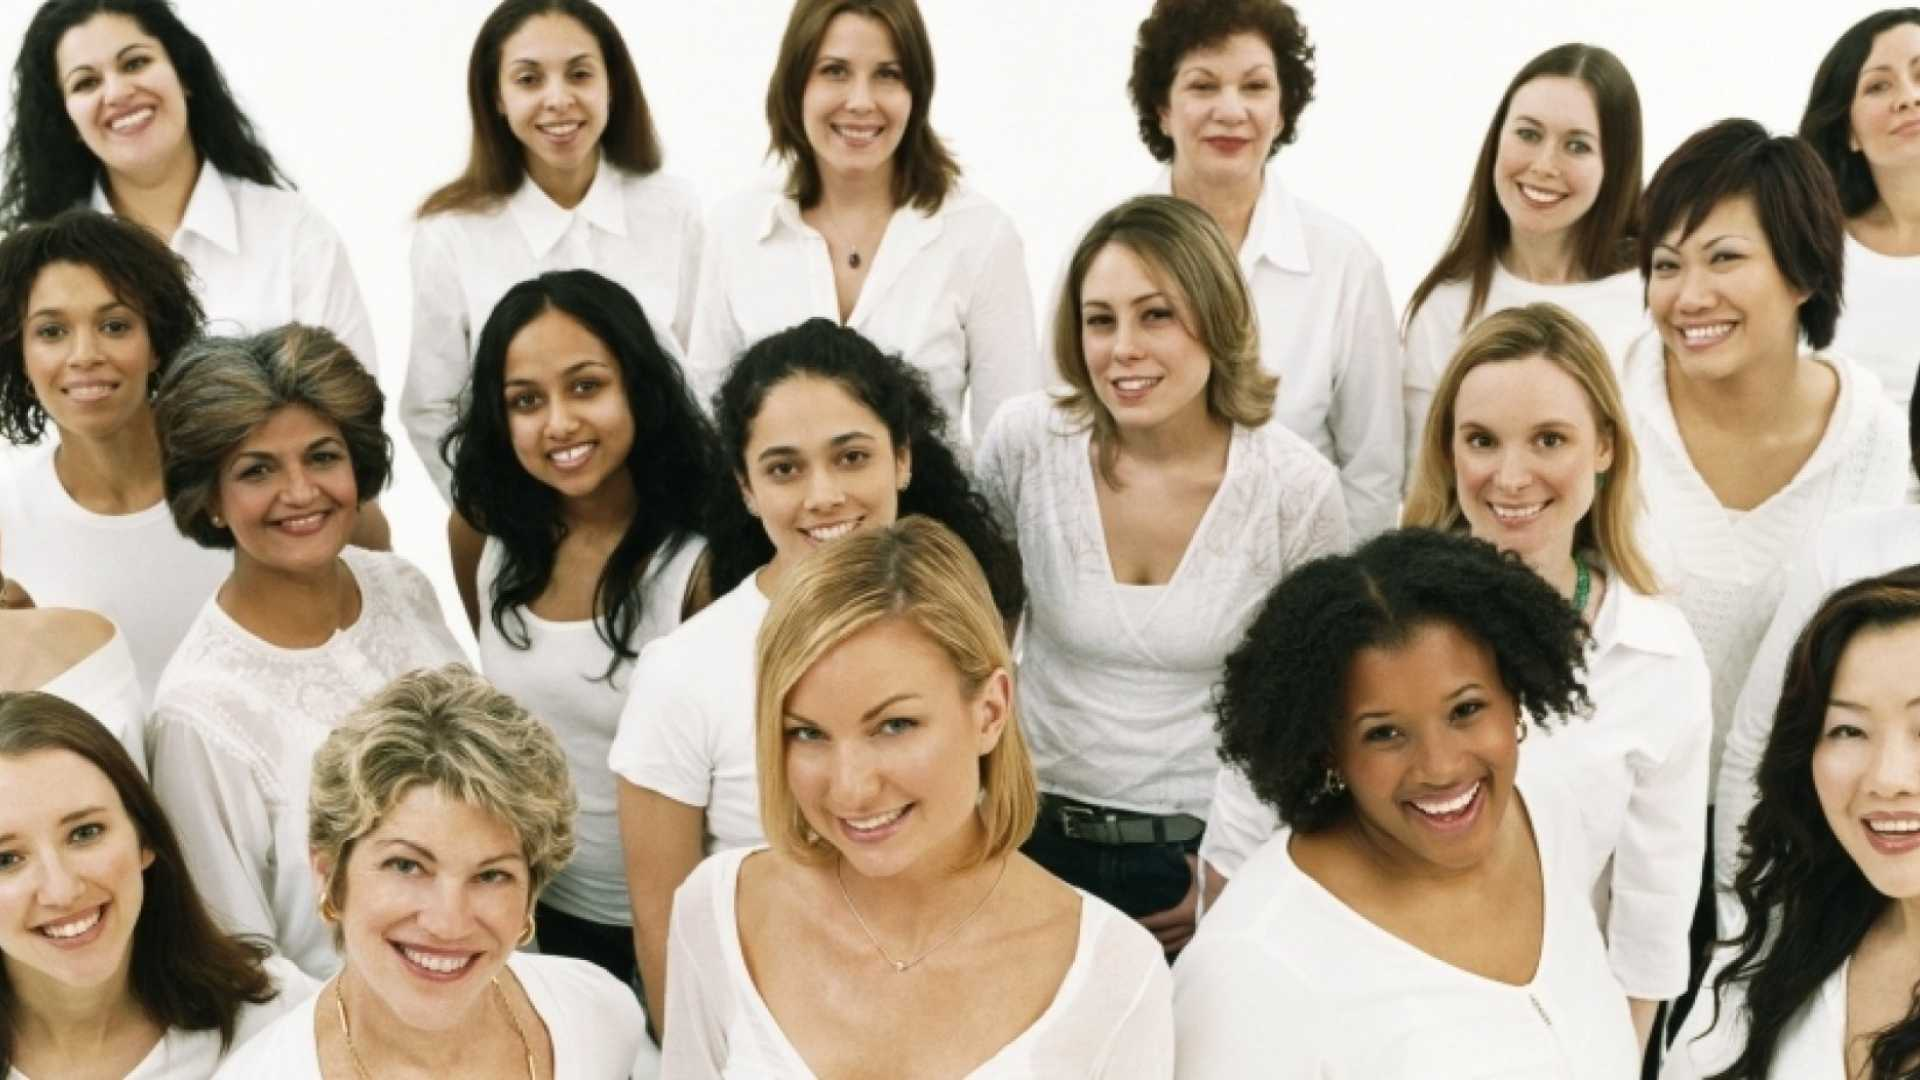 How to Get More Women Into Leadership Roles